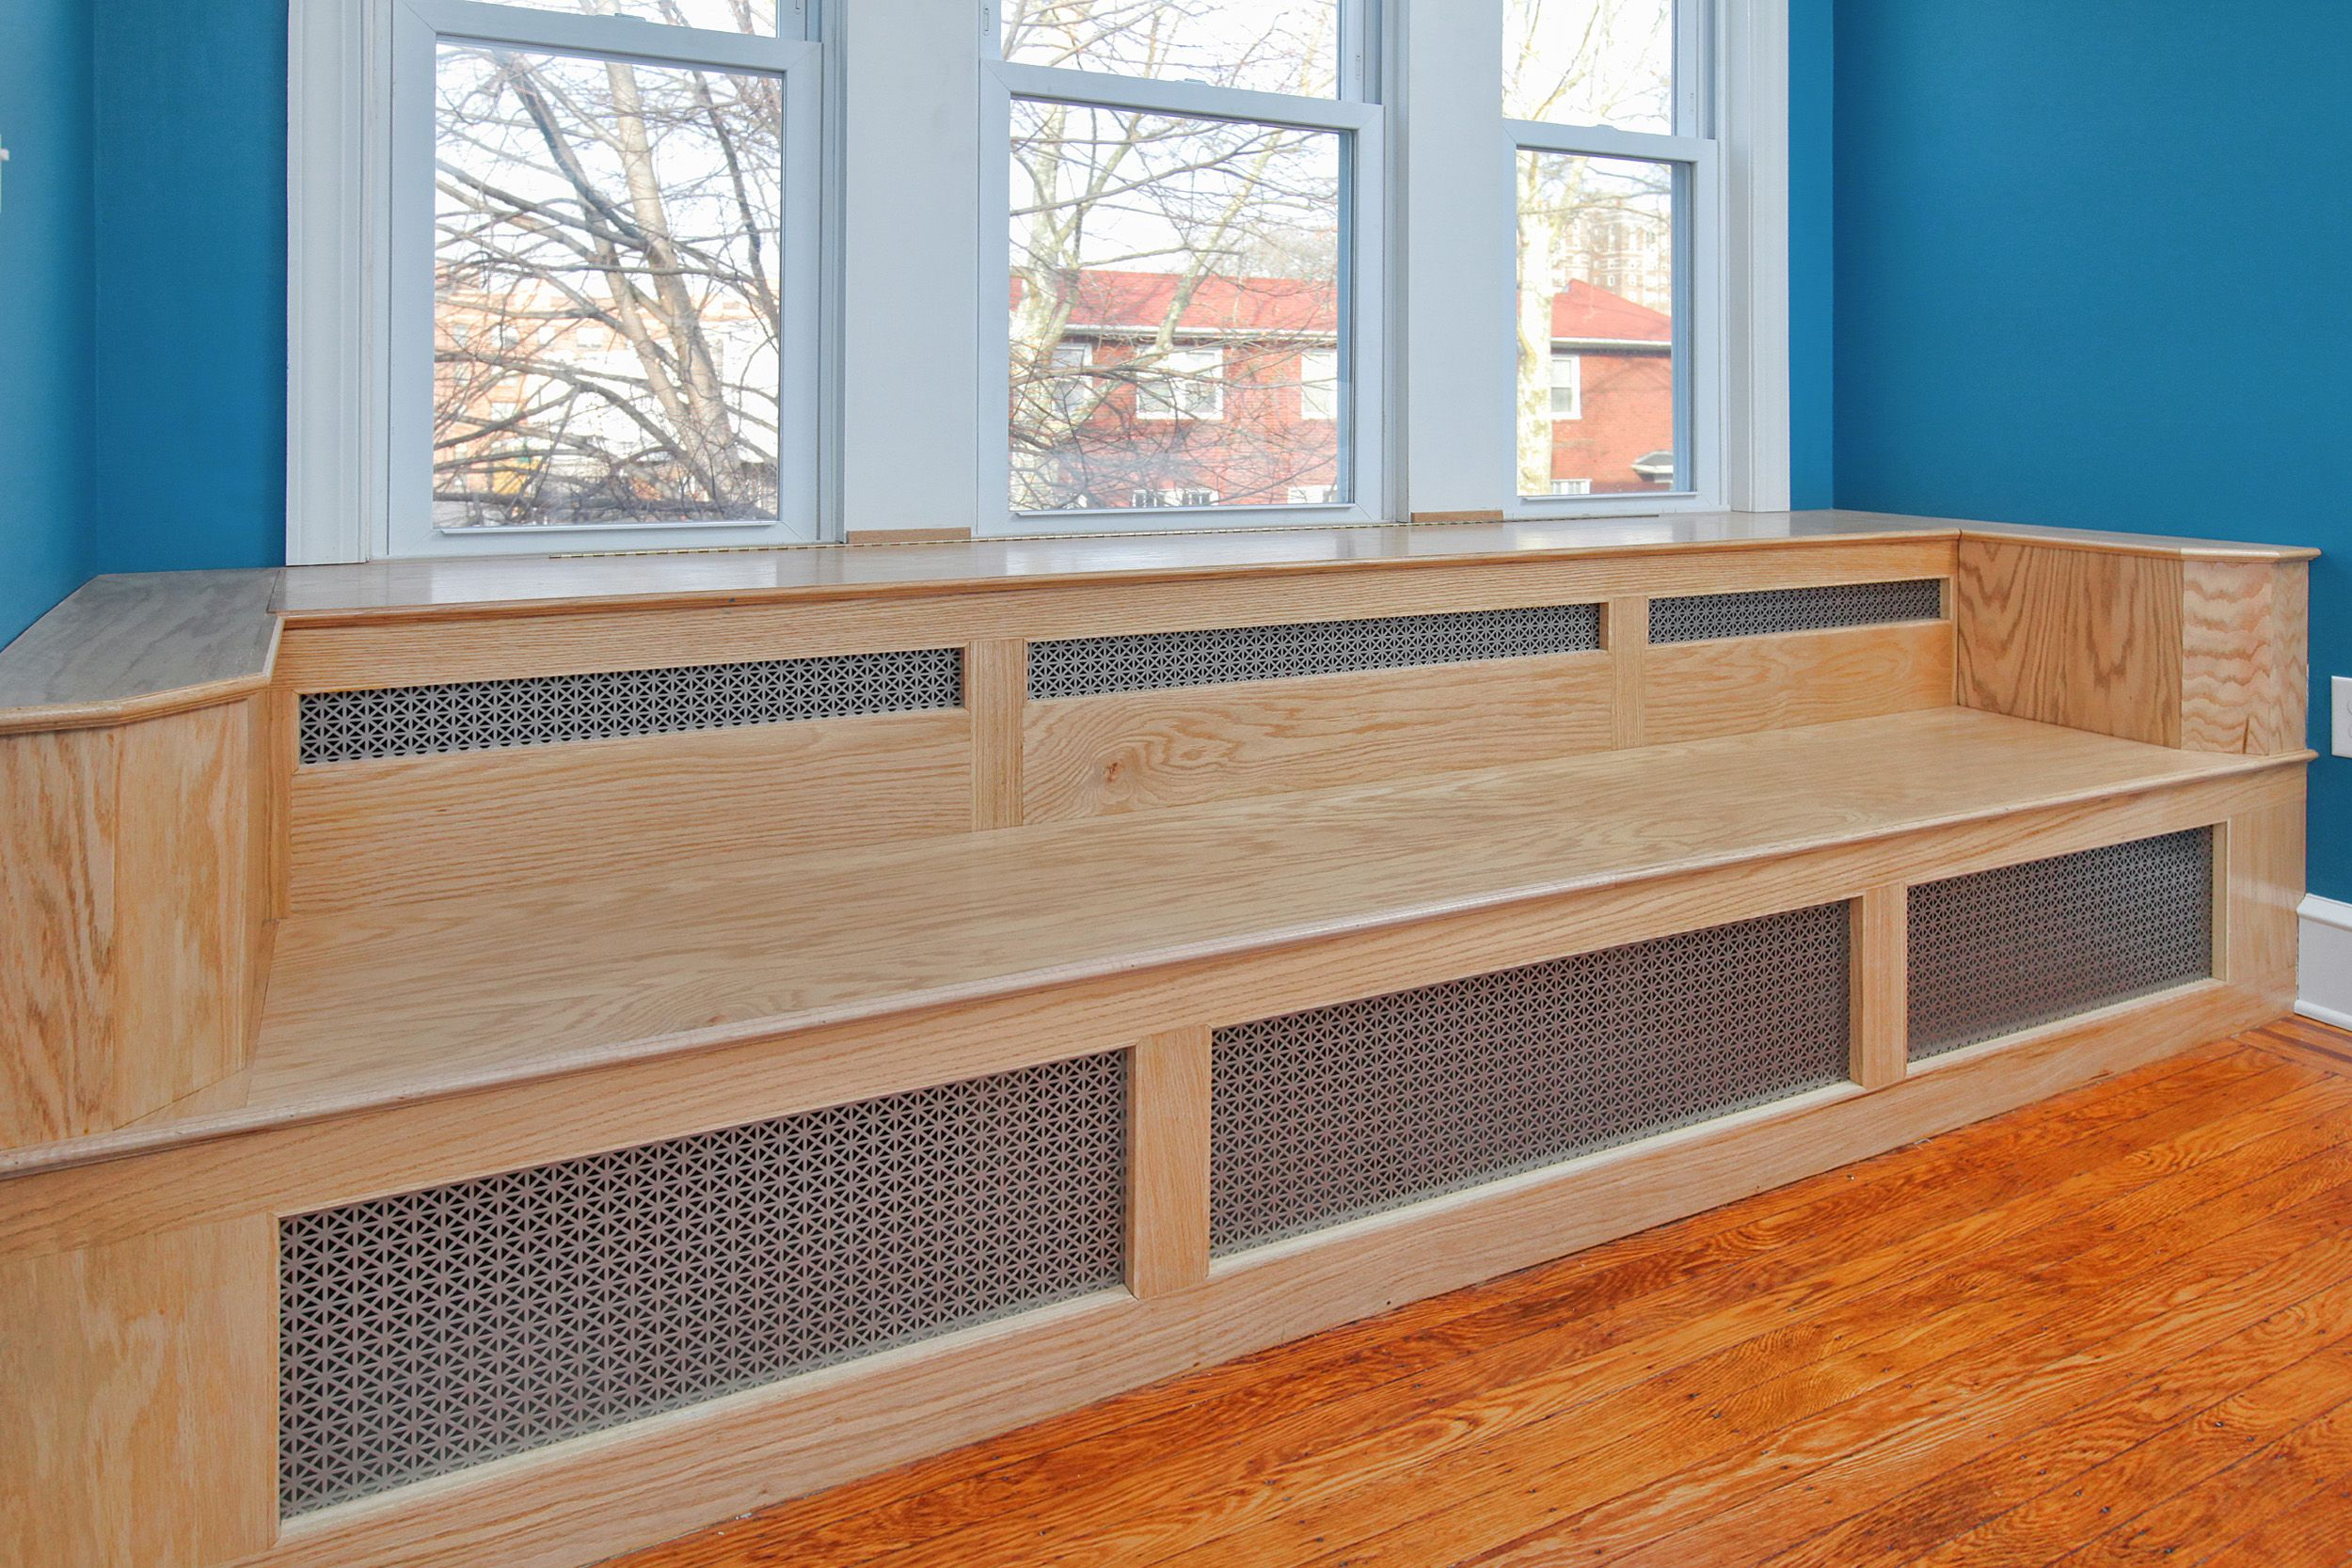 Custom Built In Oak Bench That Doubles As A Radiator Cover Banquette Seating In Kitchen Radiator Cover Home Fireplace